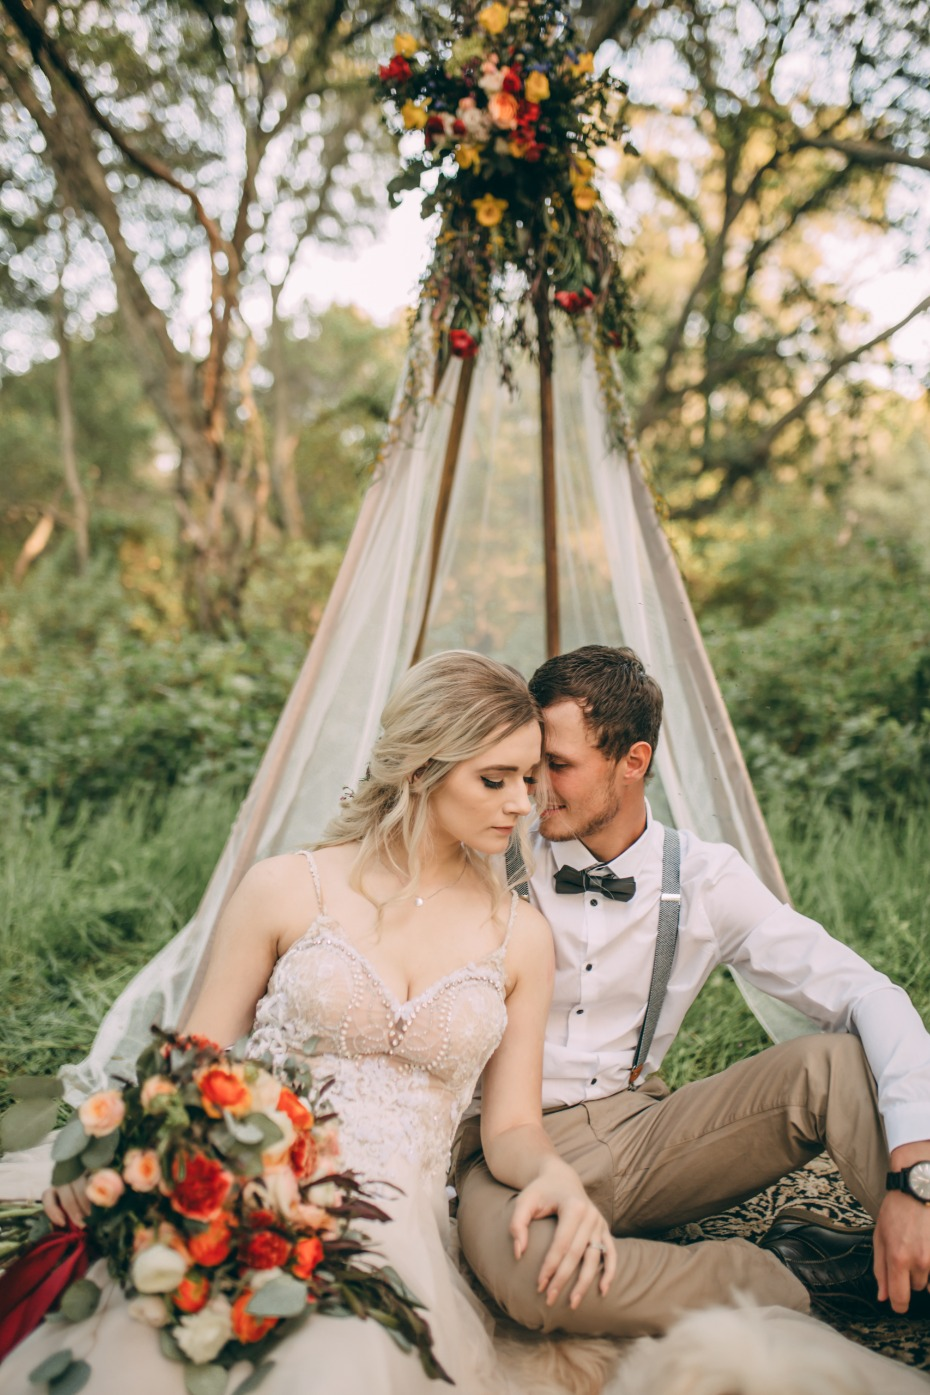 This Boho-Style Elopement Shoot at Folsom Lake Is Tee-Pee(p)-Worthy